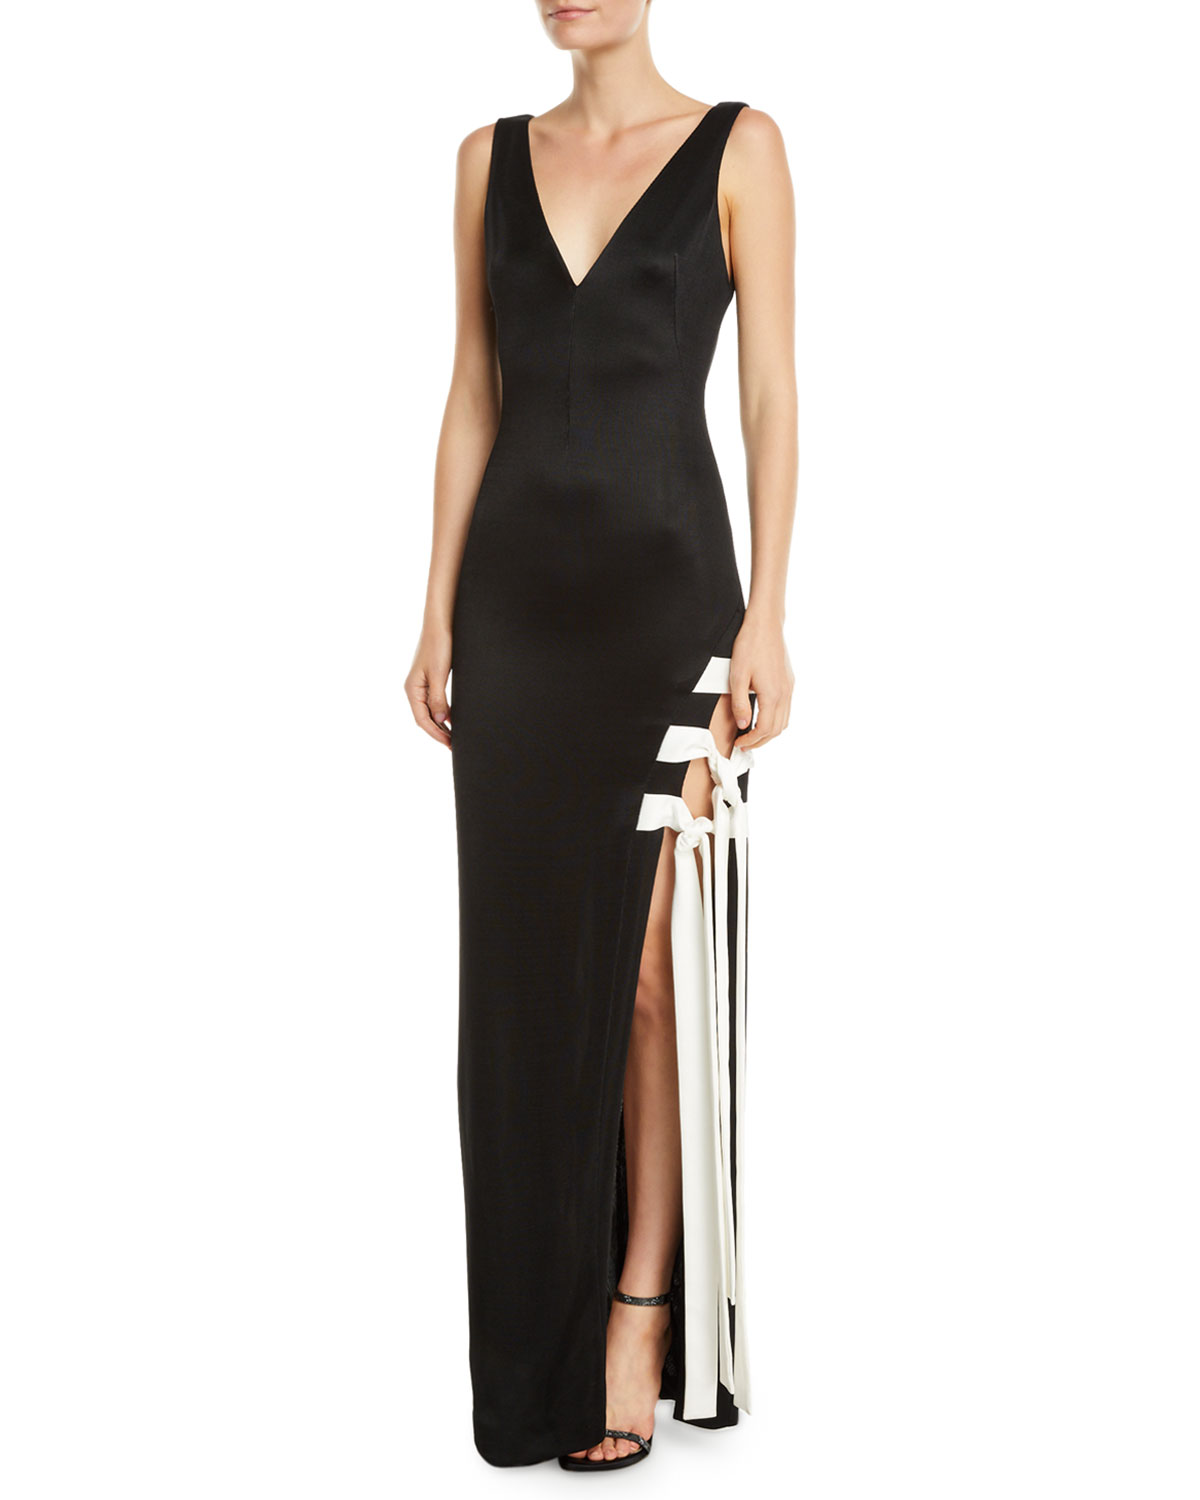 Galvan Sleeveless Lace-Up High-Slit Jersey Gown | Neiman Marcus